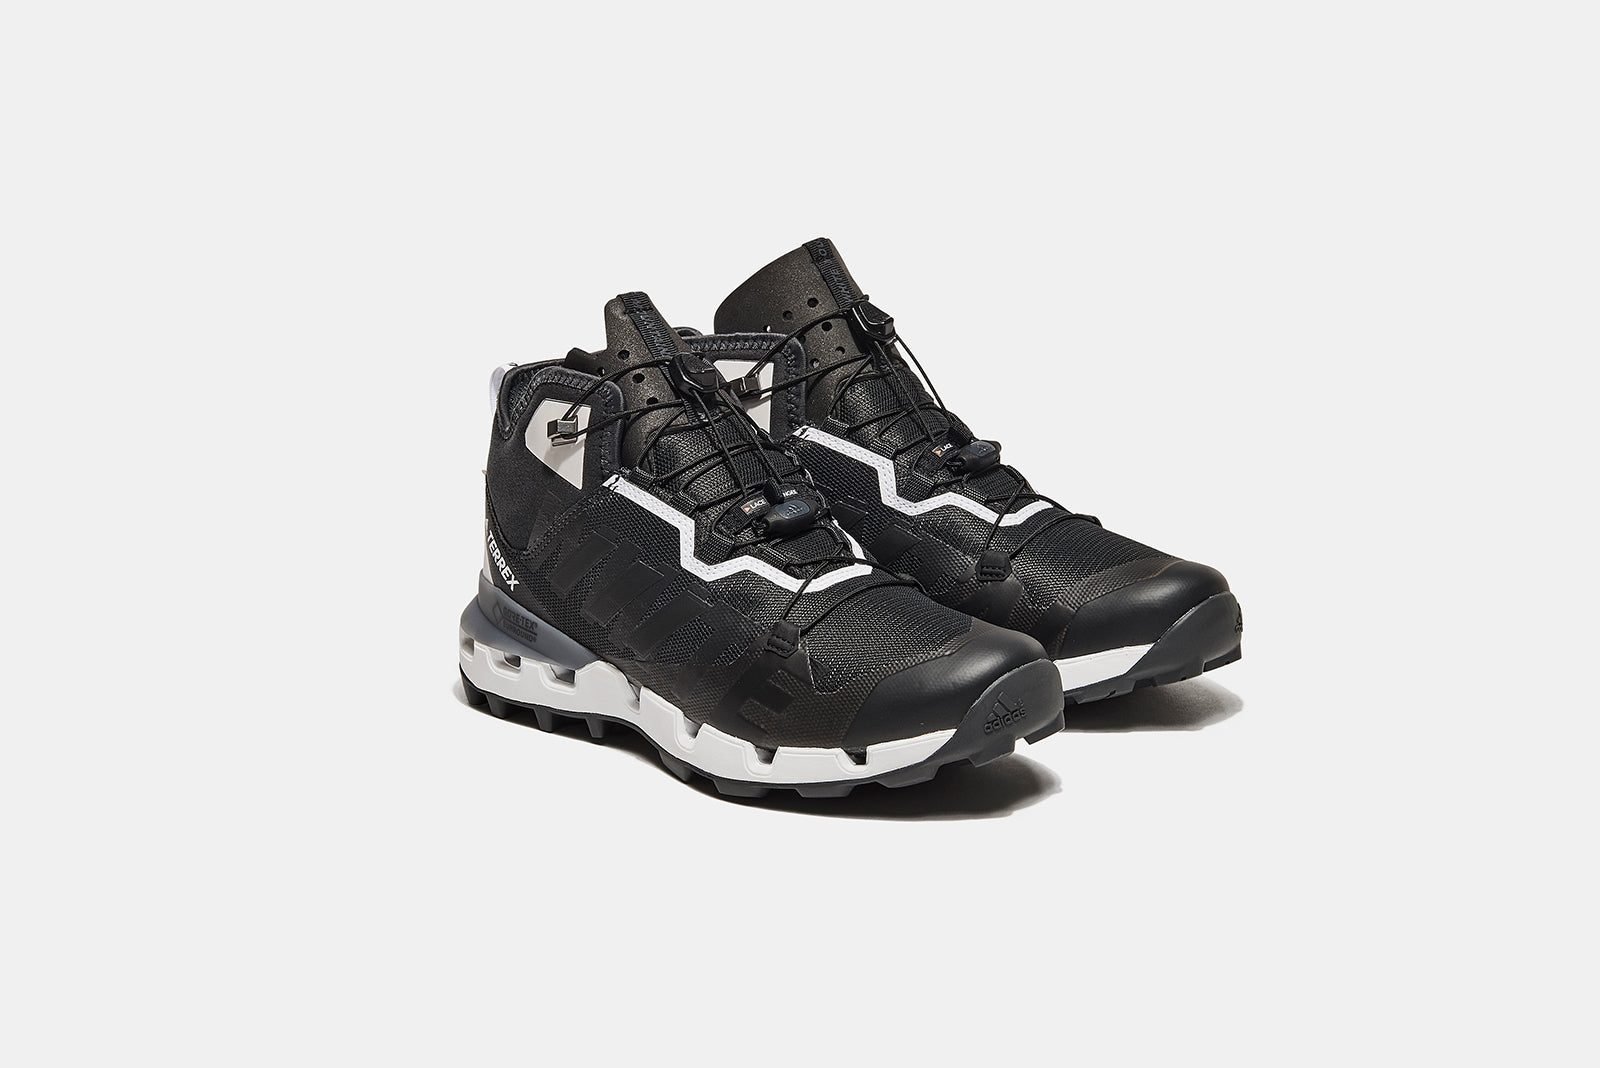 adidas TERREX Fast-GTX Surround x White Mountaineering DB3007 Carbon Core  Black Footwear White Price  £219.00. Launch  December 15th 6bc99338a